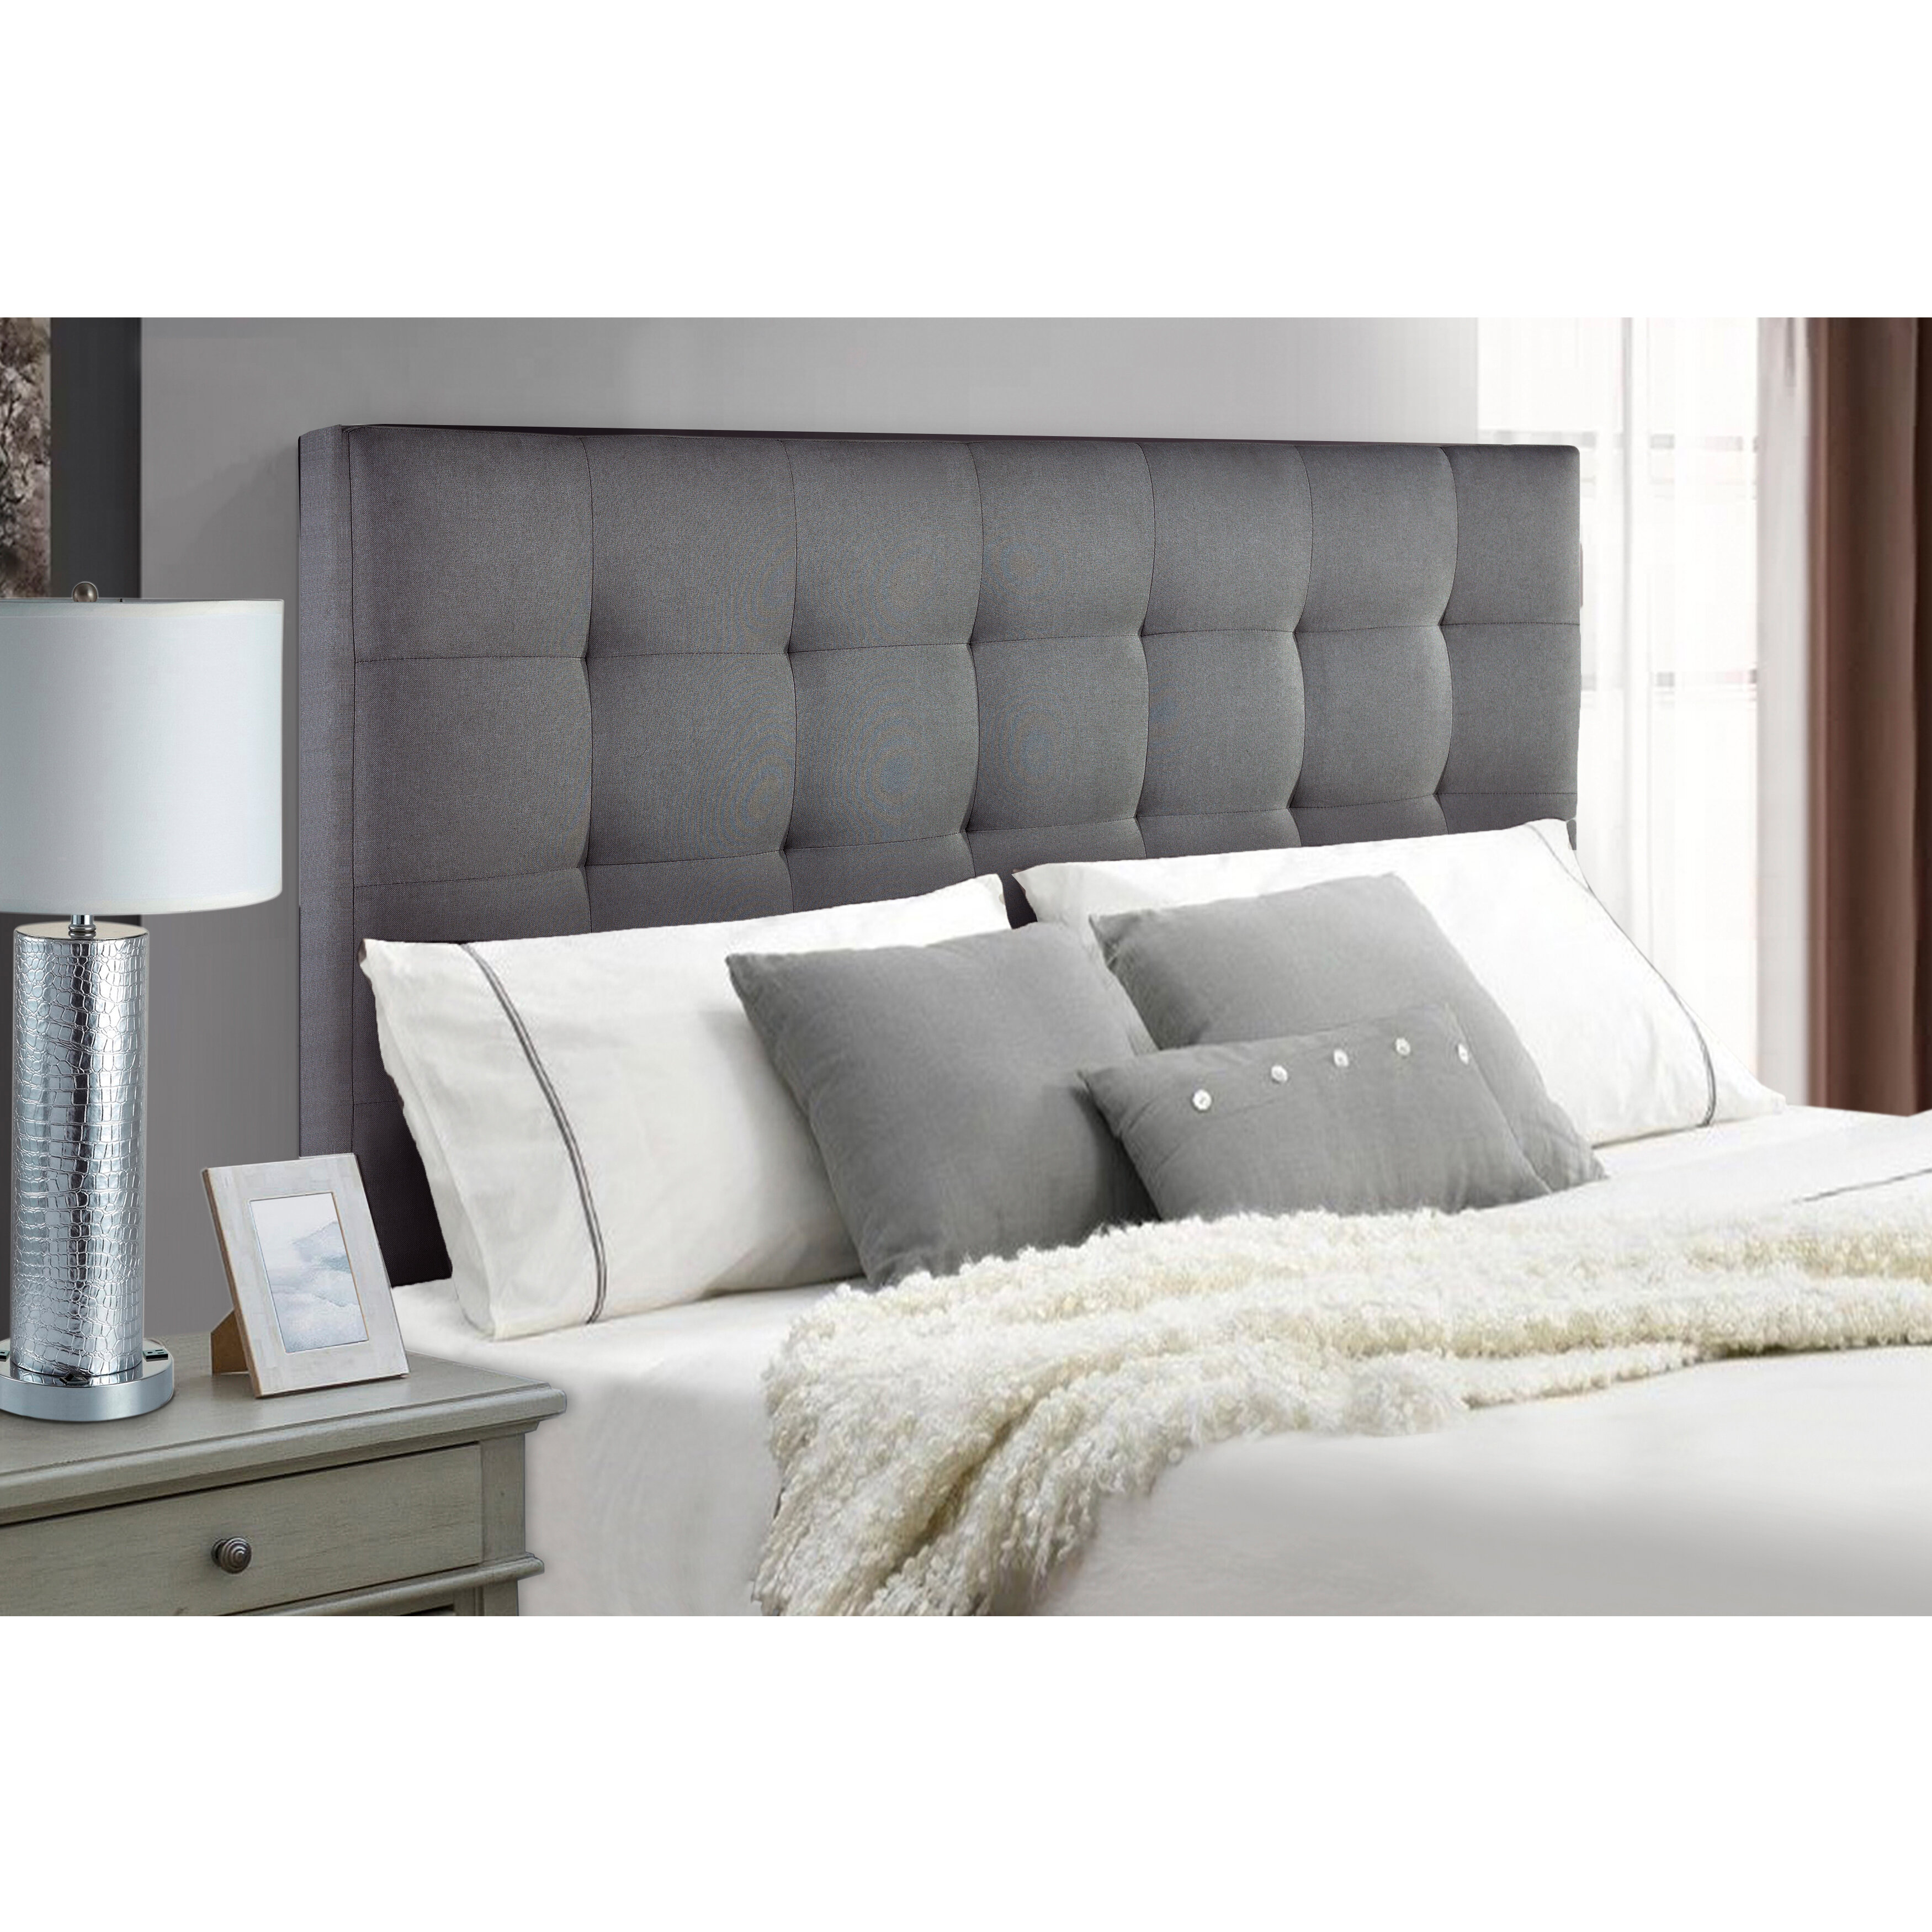 Adjustable Upholstered Panel Headboard Button Tufted Light Gray Queen Size